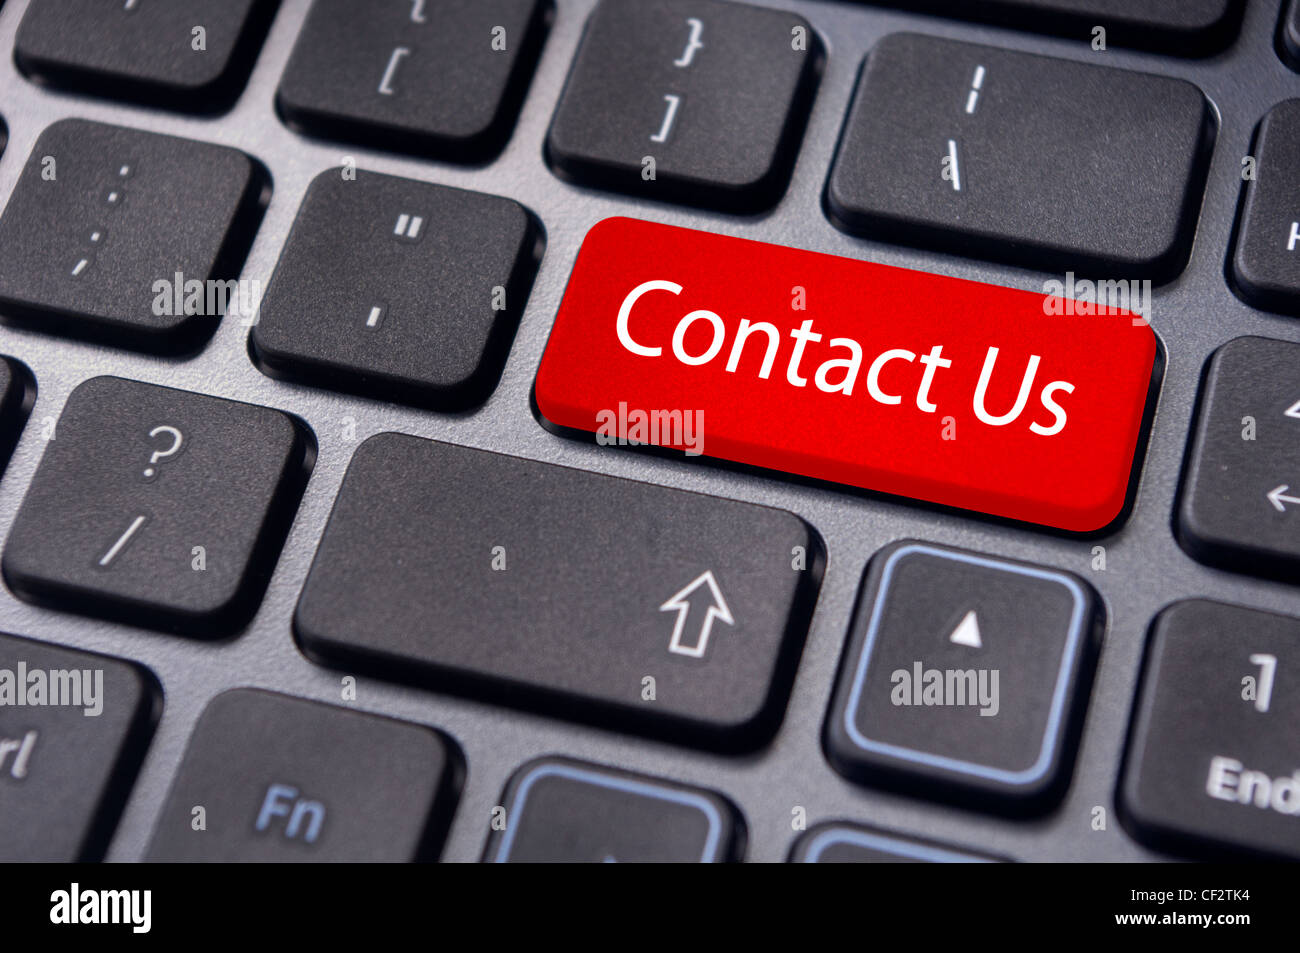 A 'contact us' message on enter key of keyboard, for online communications. - Stock Image